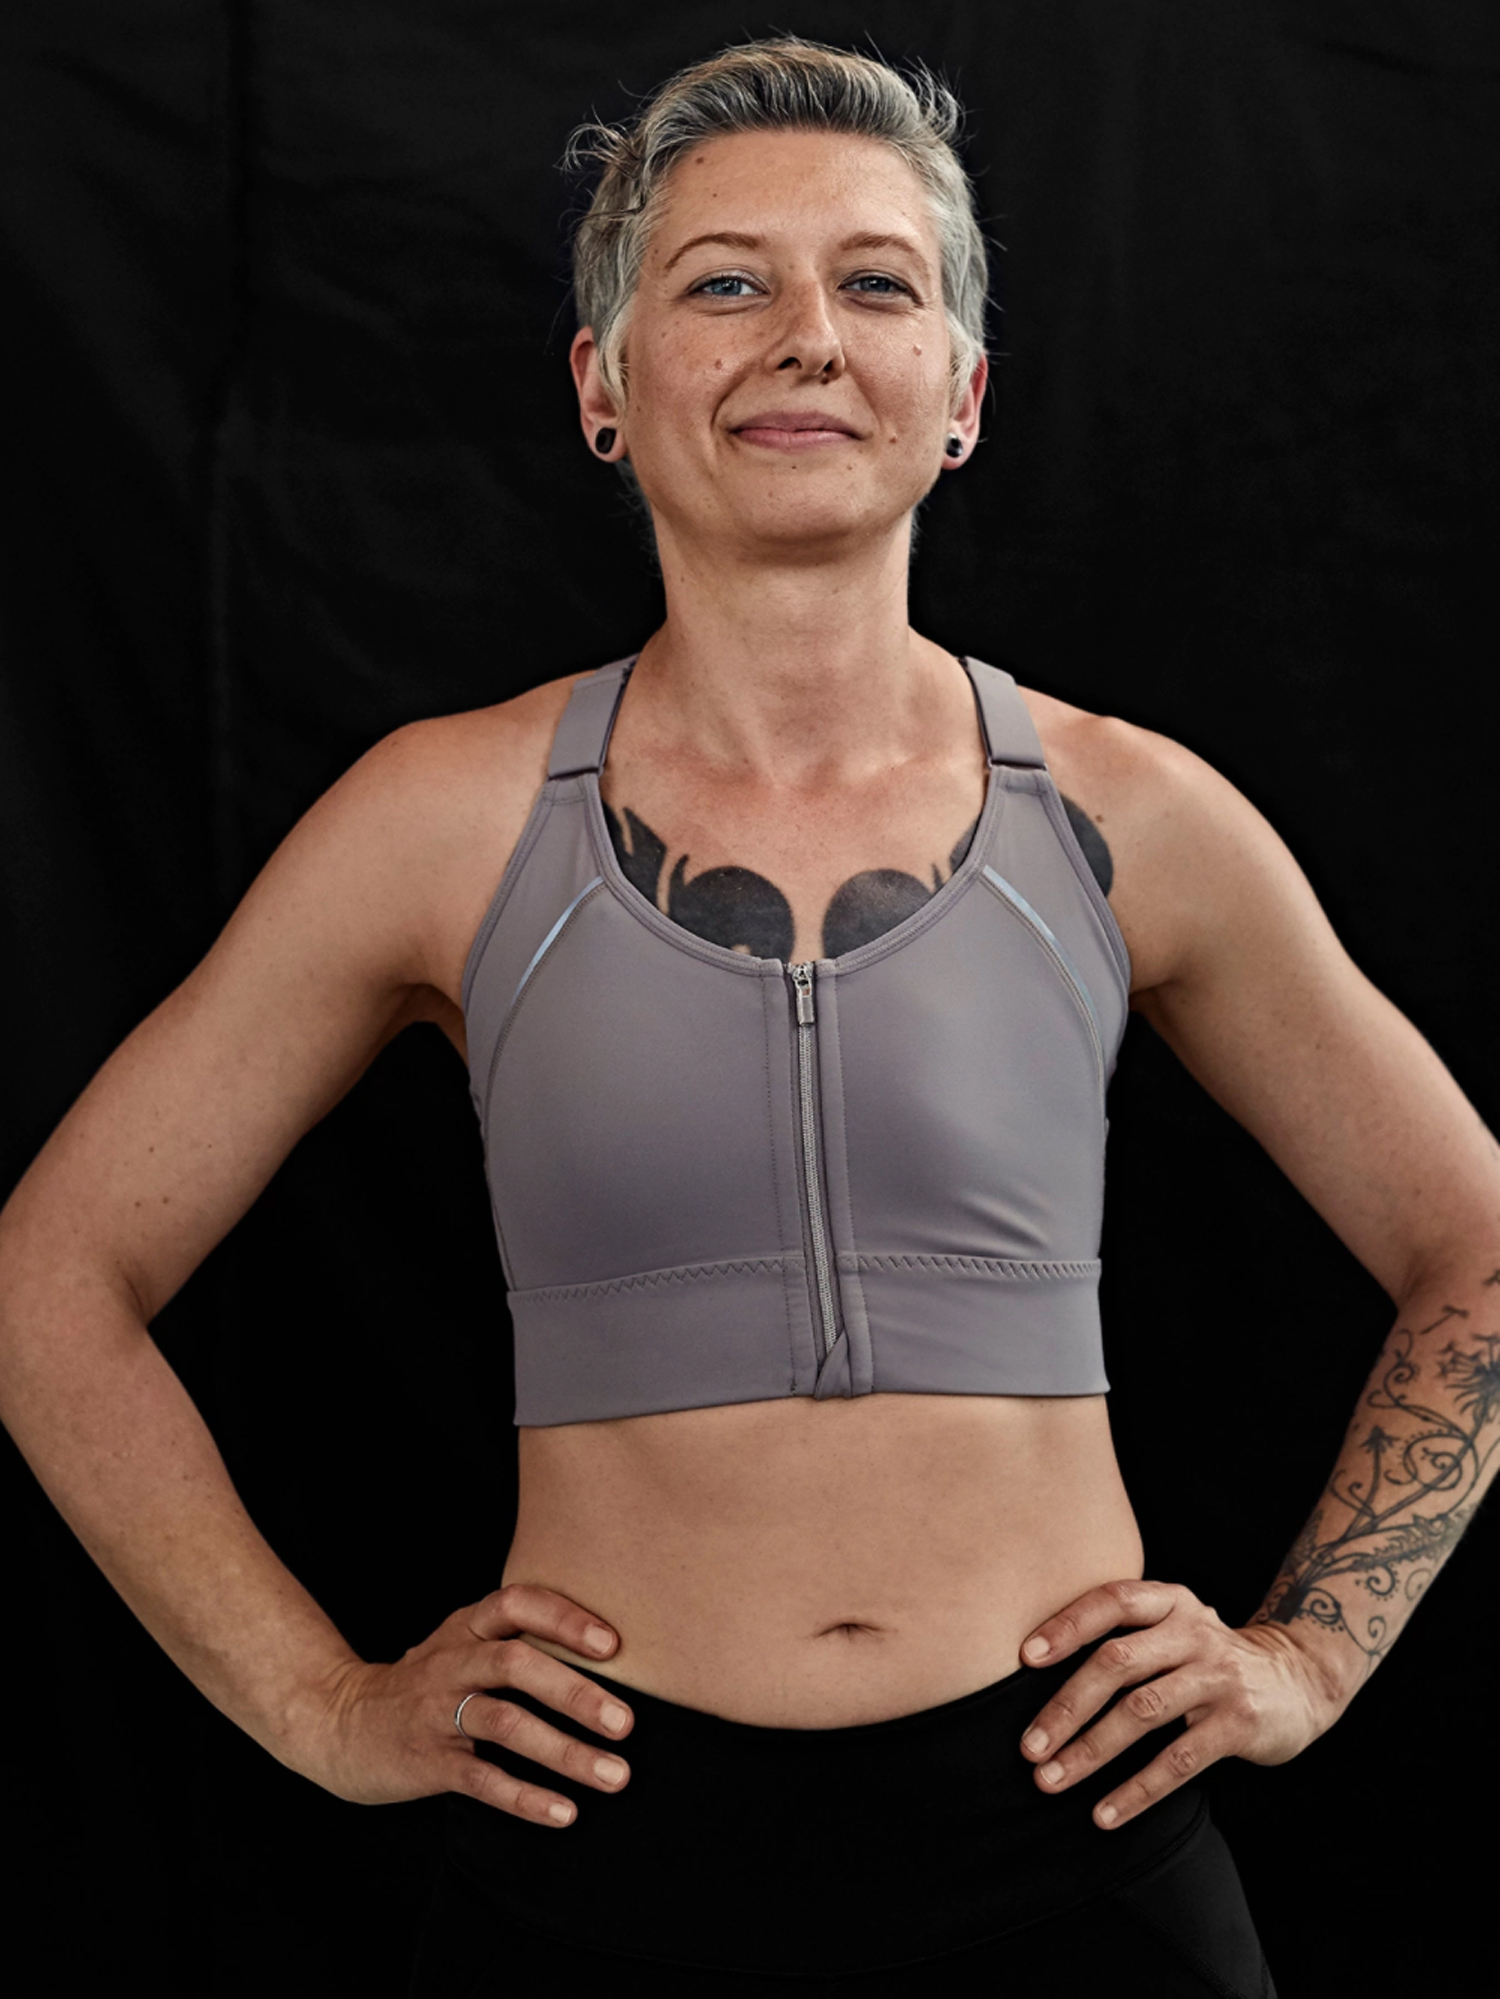 This Athleta Sports Bra Was Specially Designed for Women Who Have Had a Mastectomy